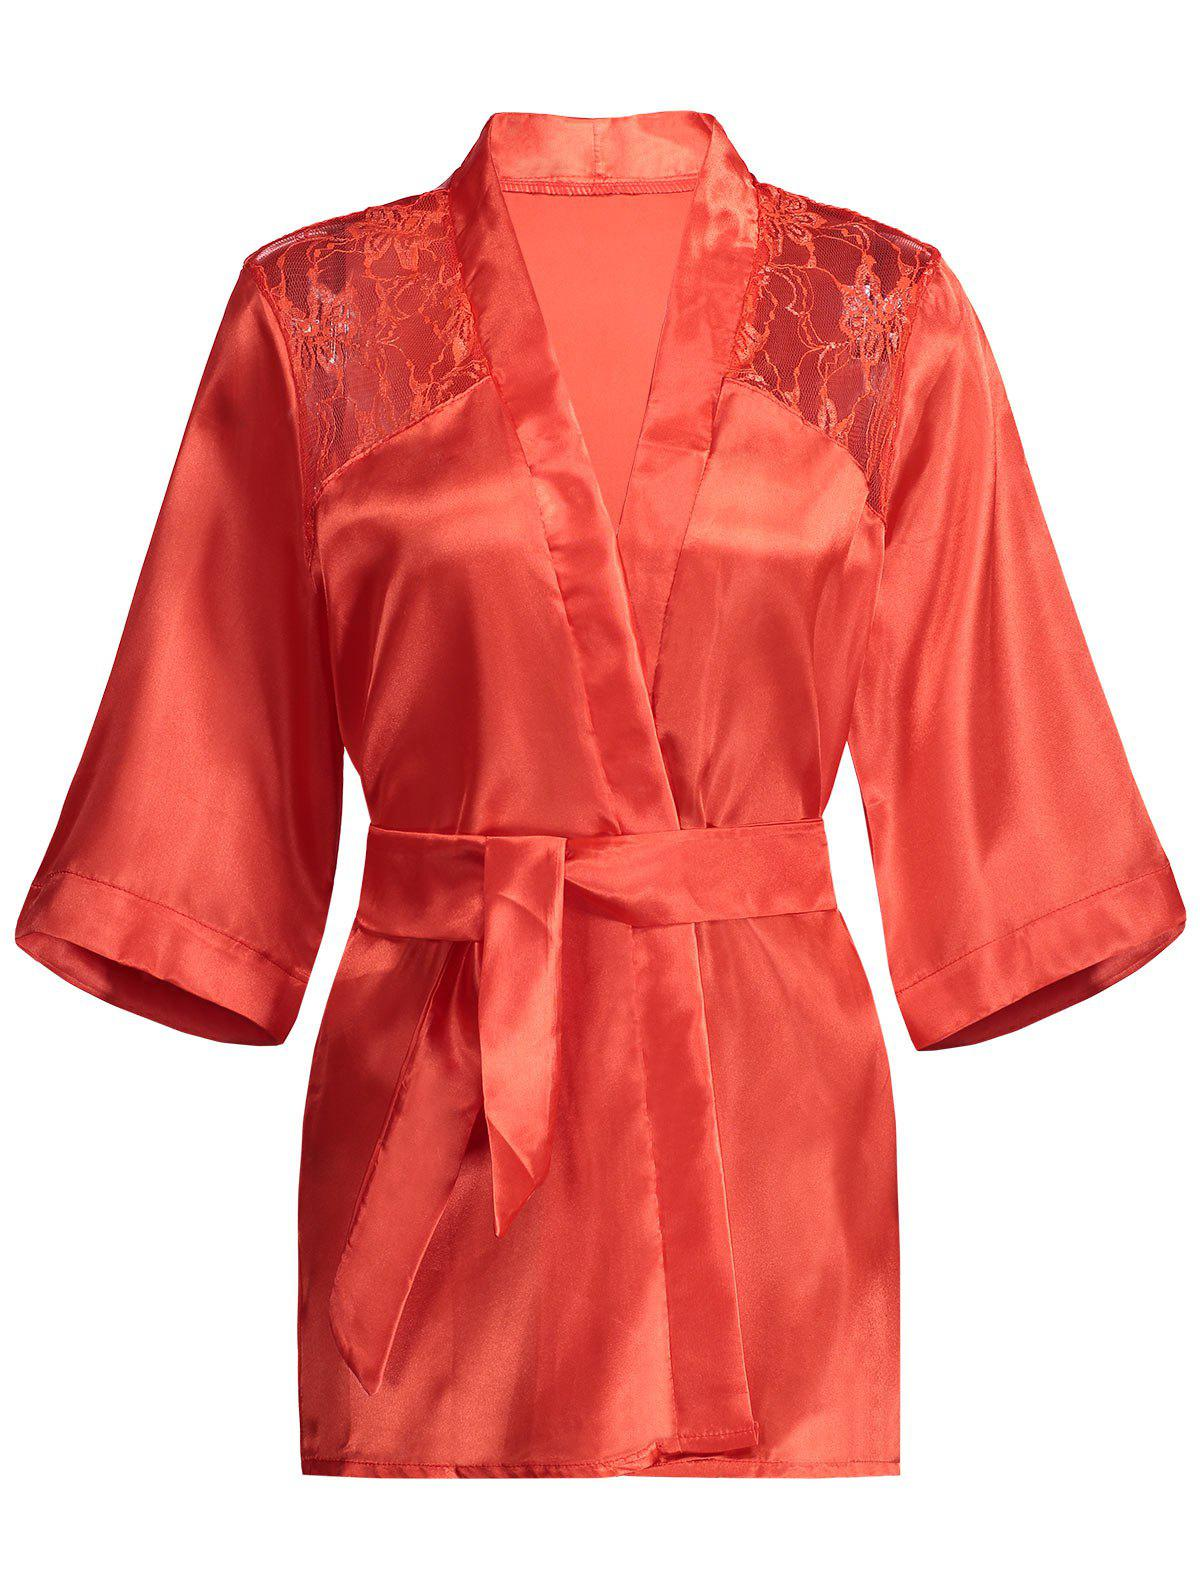 Lace Panel Sommeil Wrap Robe - Rouge XL